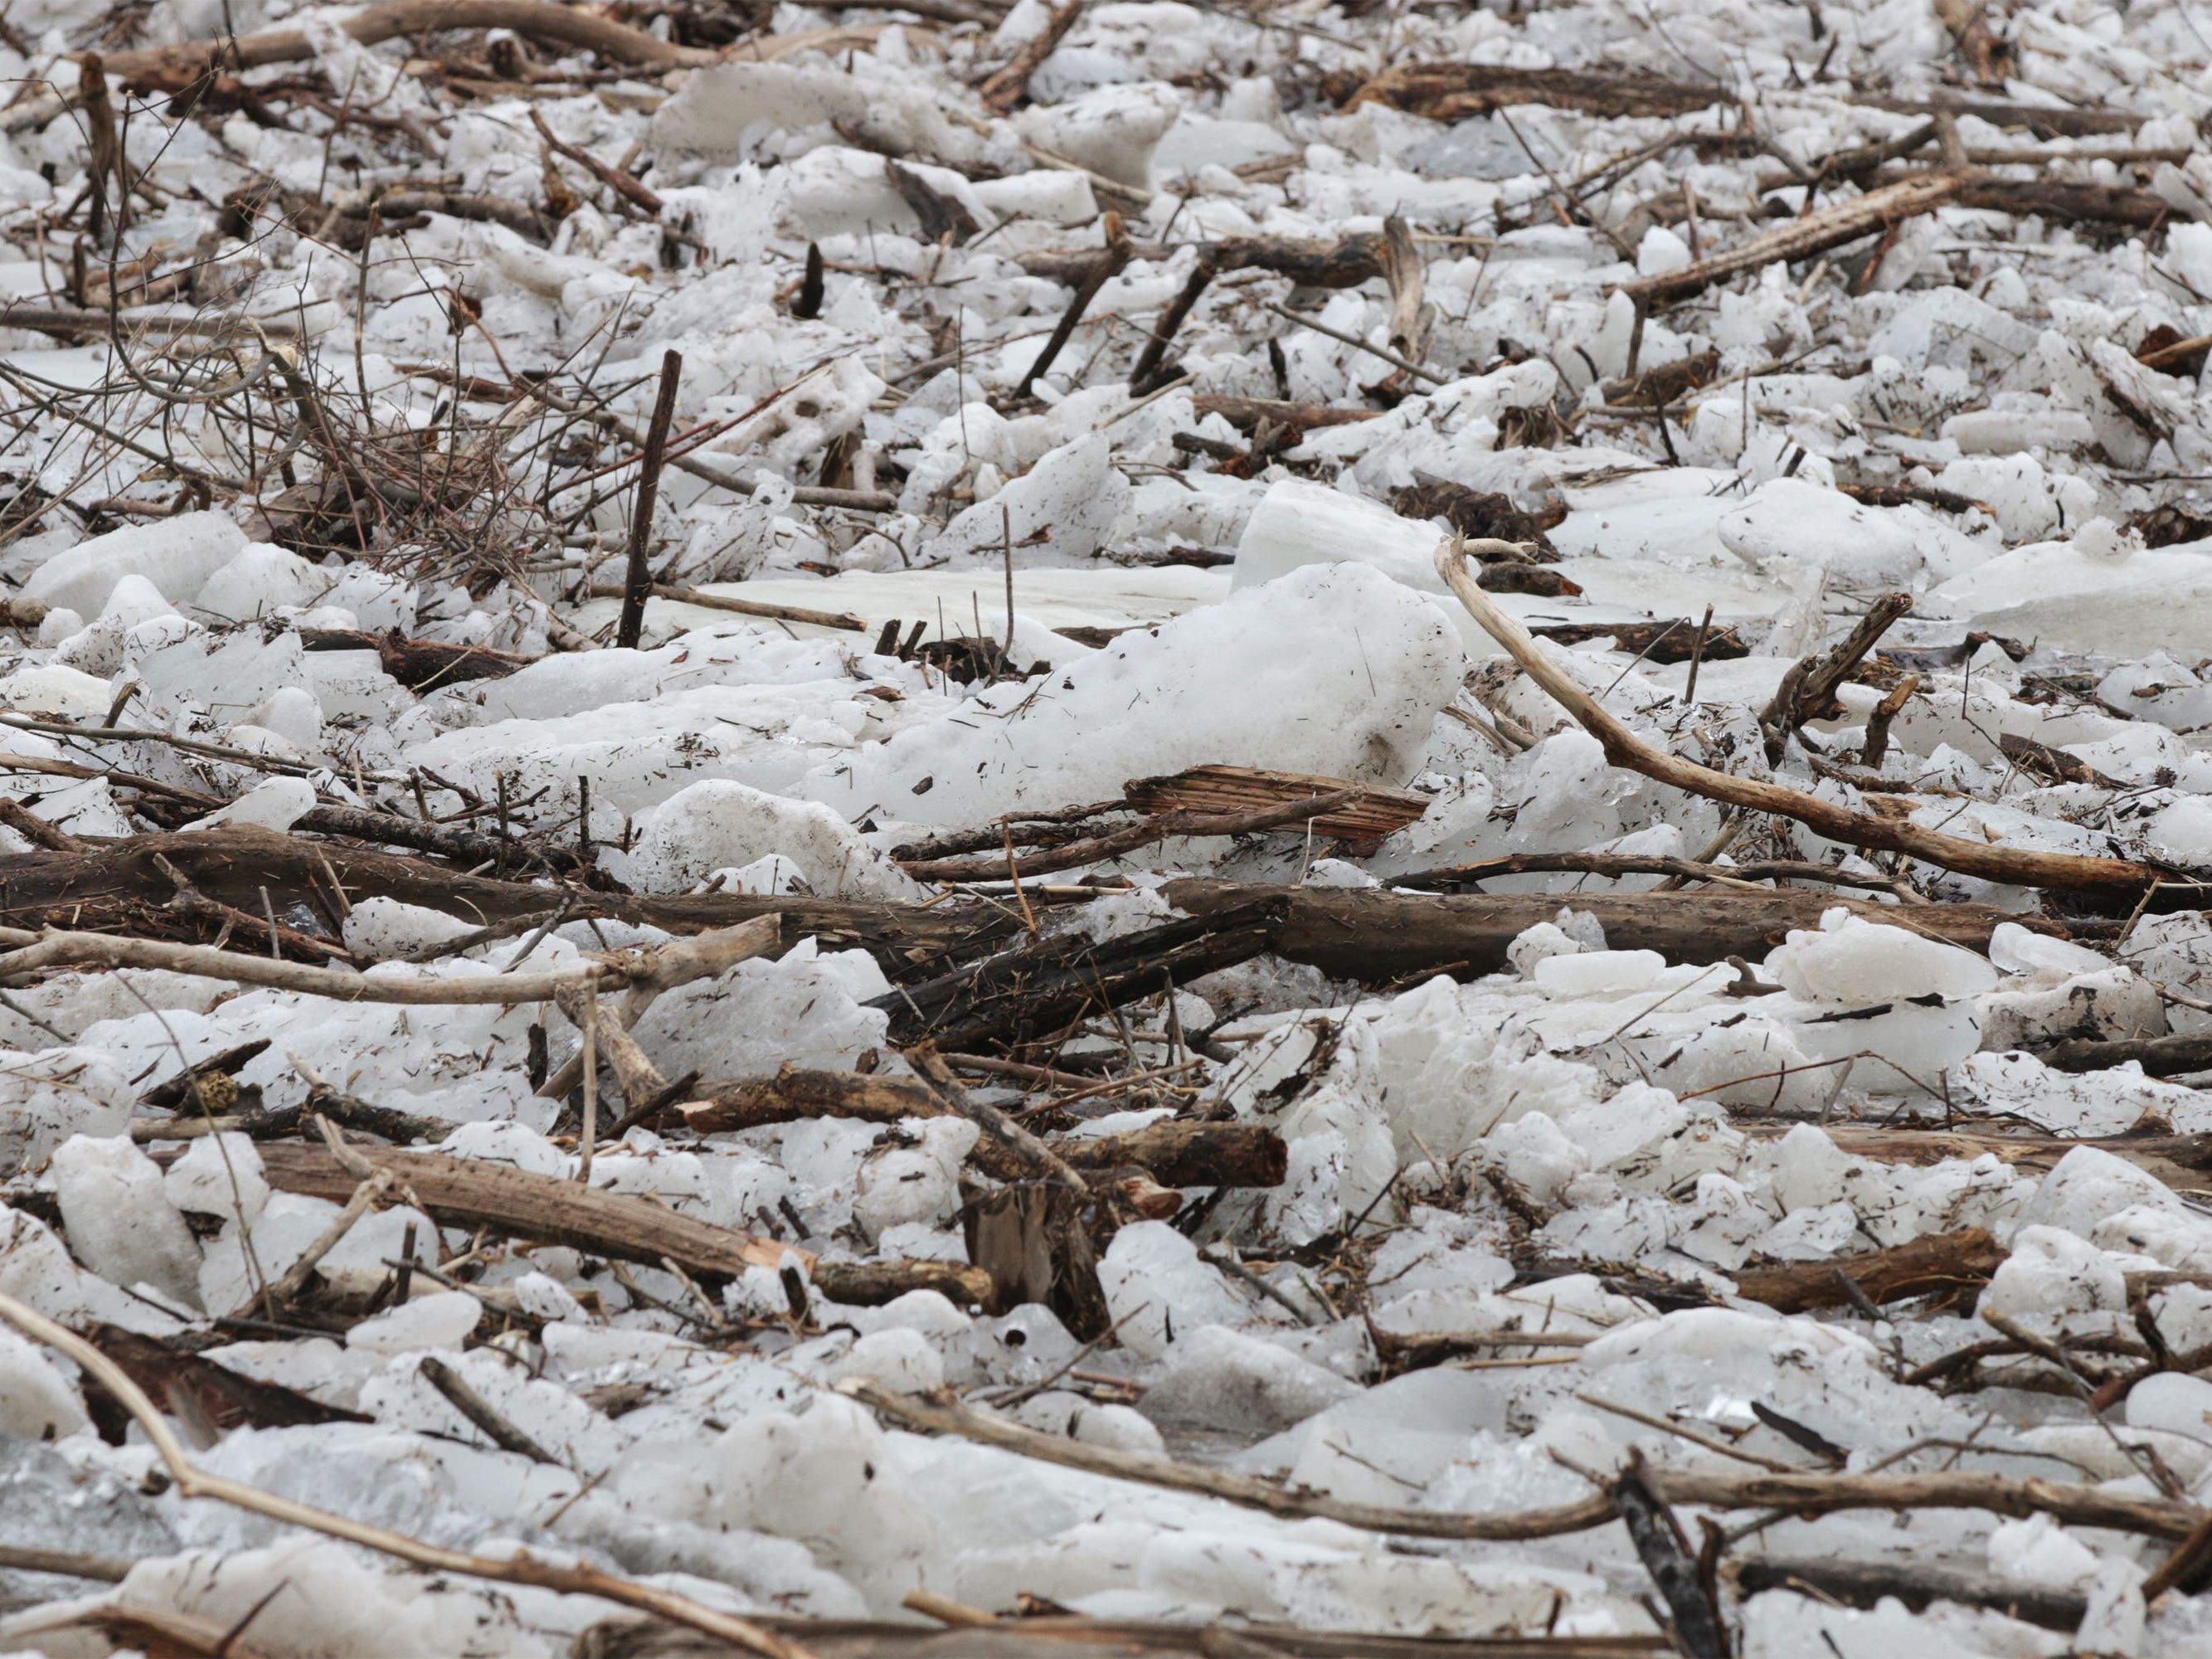 Logs, branches and ice jam on the Sheboygan River near Kiwanis Park, Wednesday, March 20, 2019, in Sheboygan, Wis.